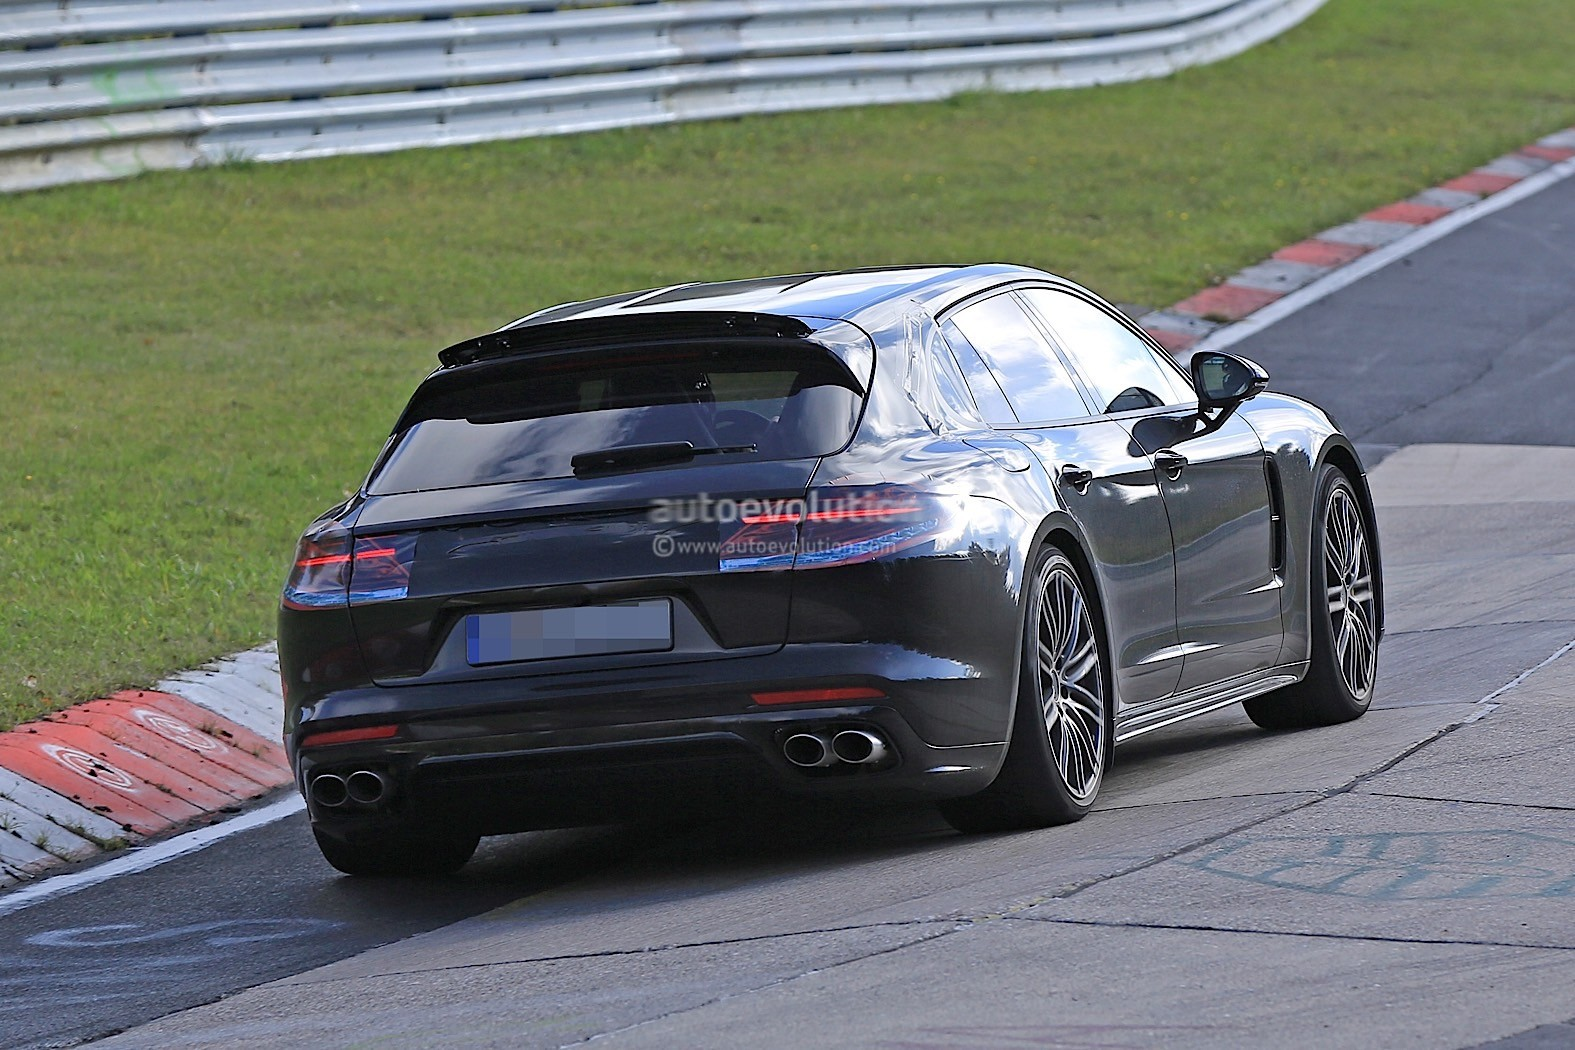 2018 porsche panamera based coupe spied for the first time autos post. Black Bedroom Furniture Sets. Home Design Ideas